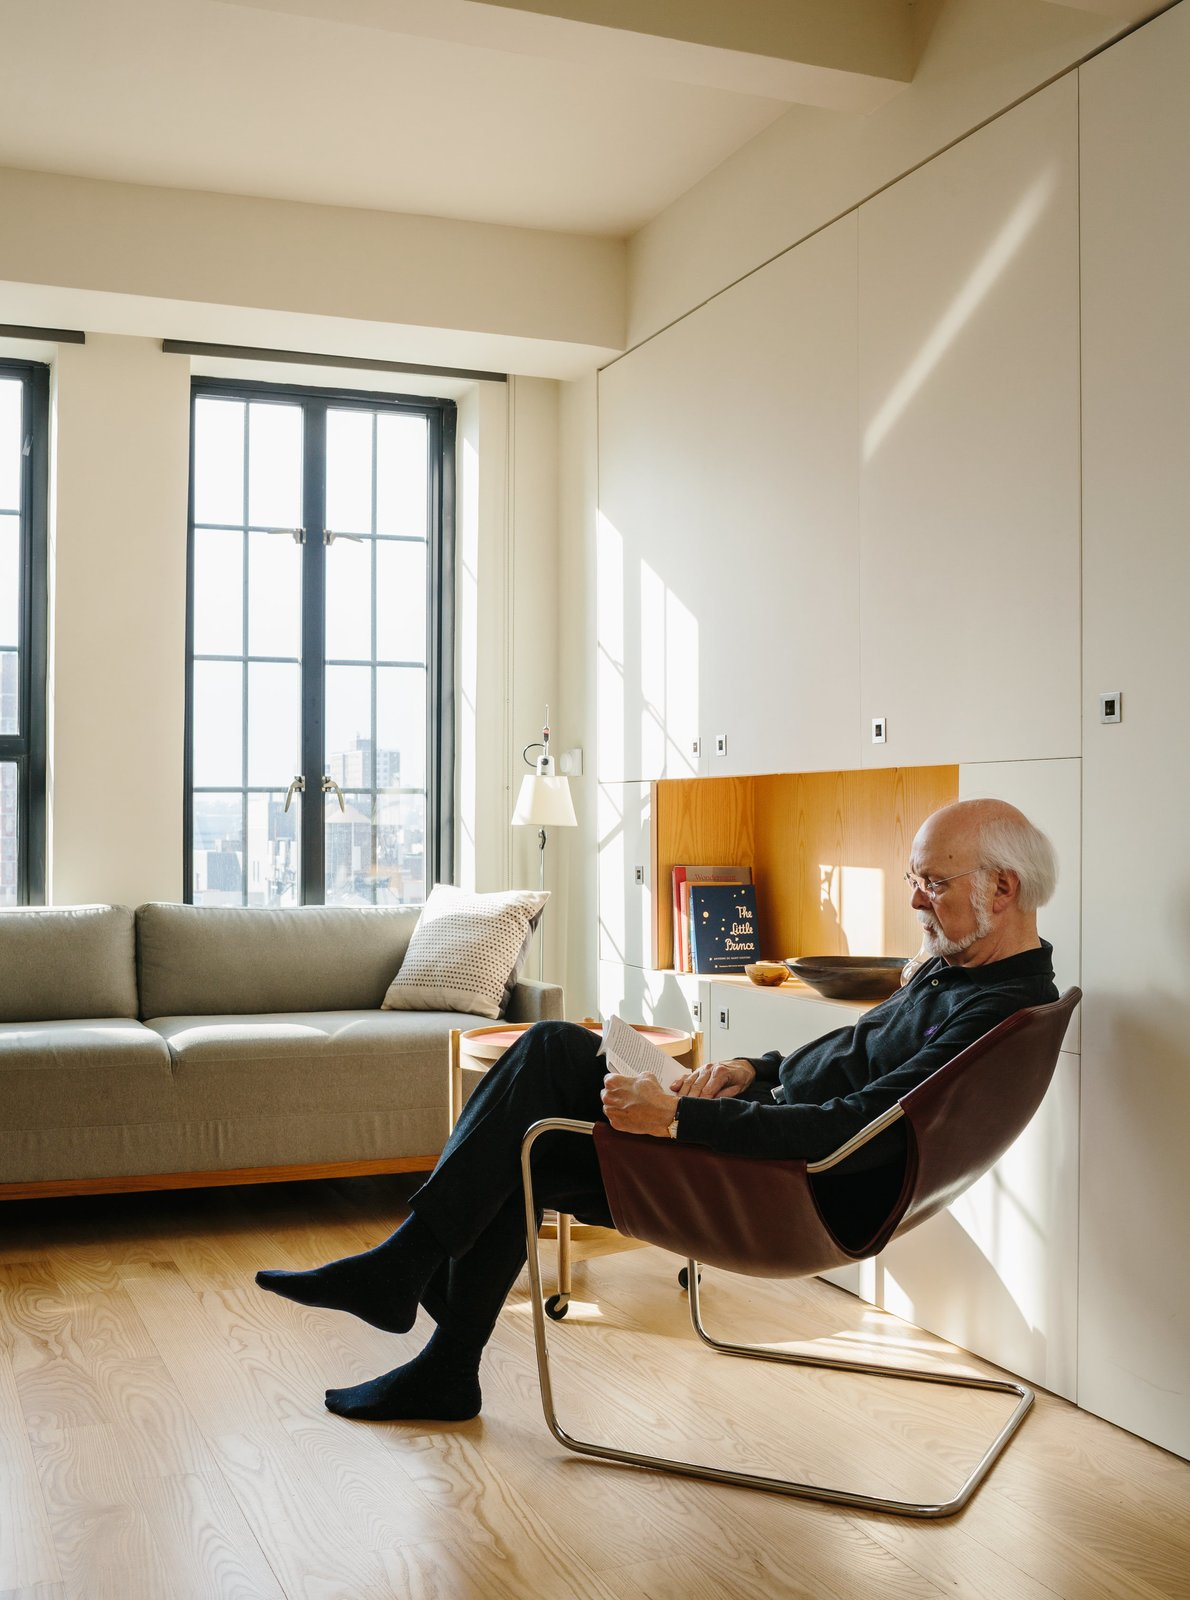 Living Room, Chair, Sofa, End Tables, Storage, Coffee Tables, Shelves, Lamps, Table Lighting, and Light Hardwood Floor Resident Paul Andersson lounges in a Paulistano armchair by Paulo Mendes da Rocha.  Photo 4 of 9 in A Pivoting Wall Makes This Tiny Studio a Fit For Any Occasion